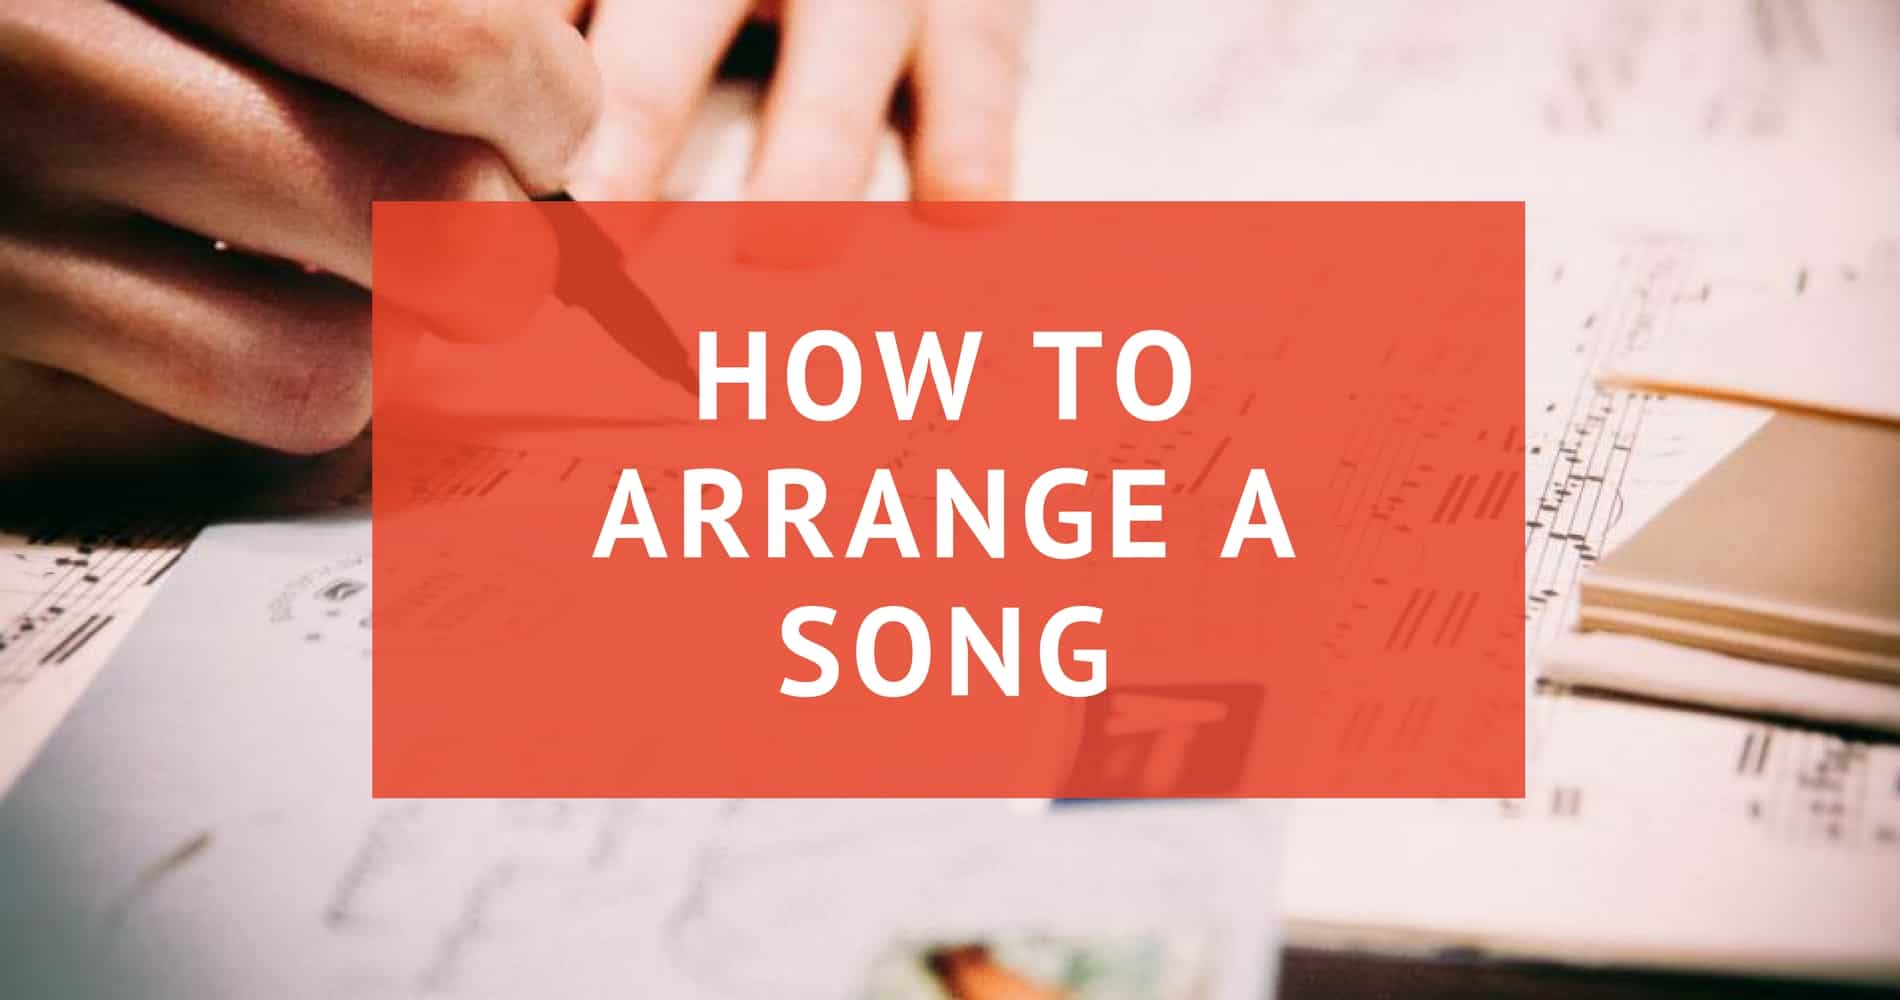 How to arrange a song